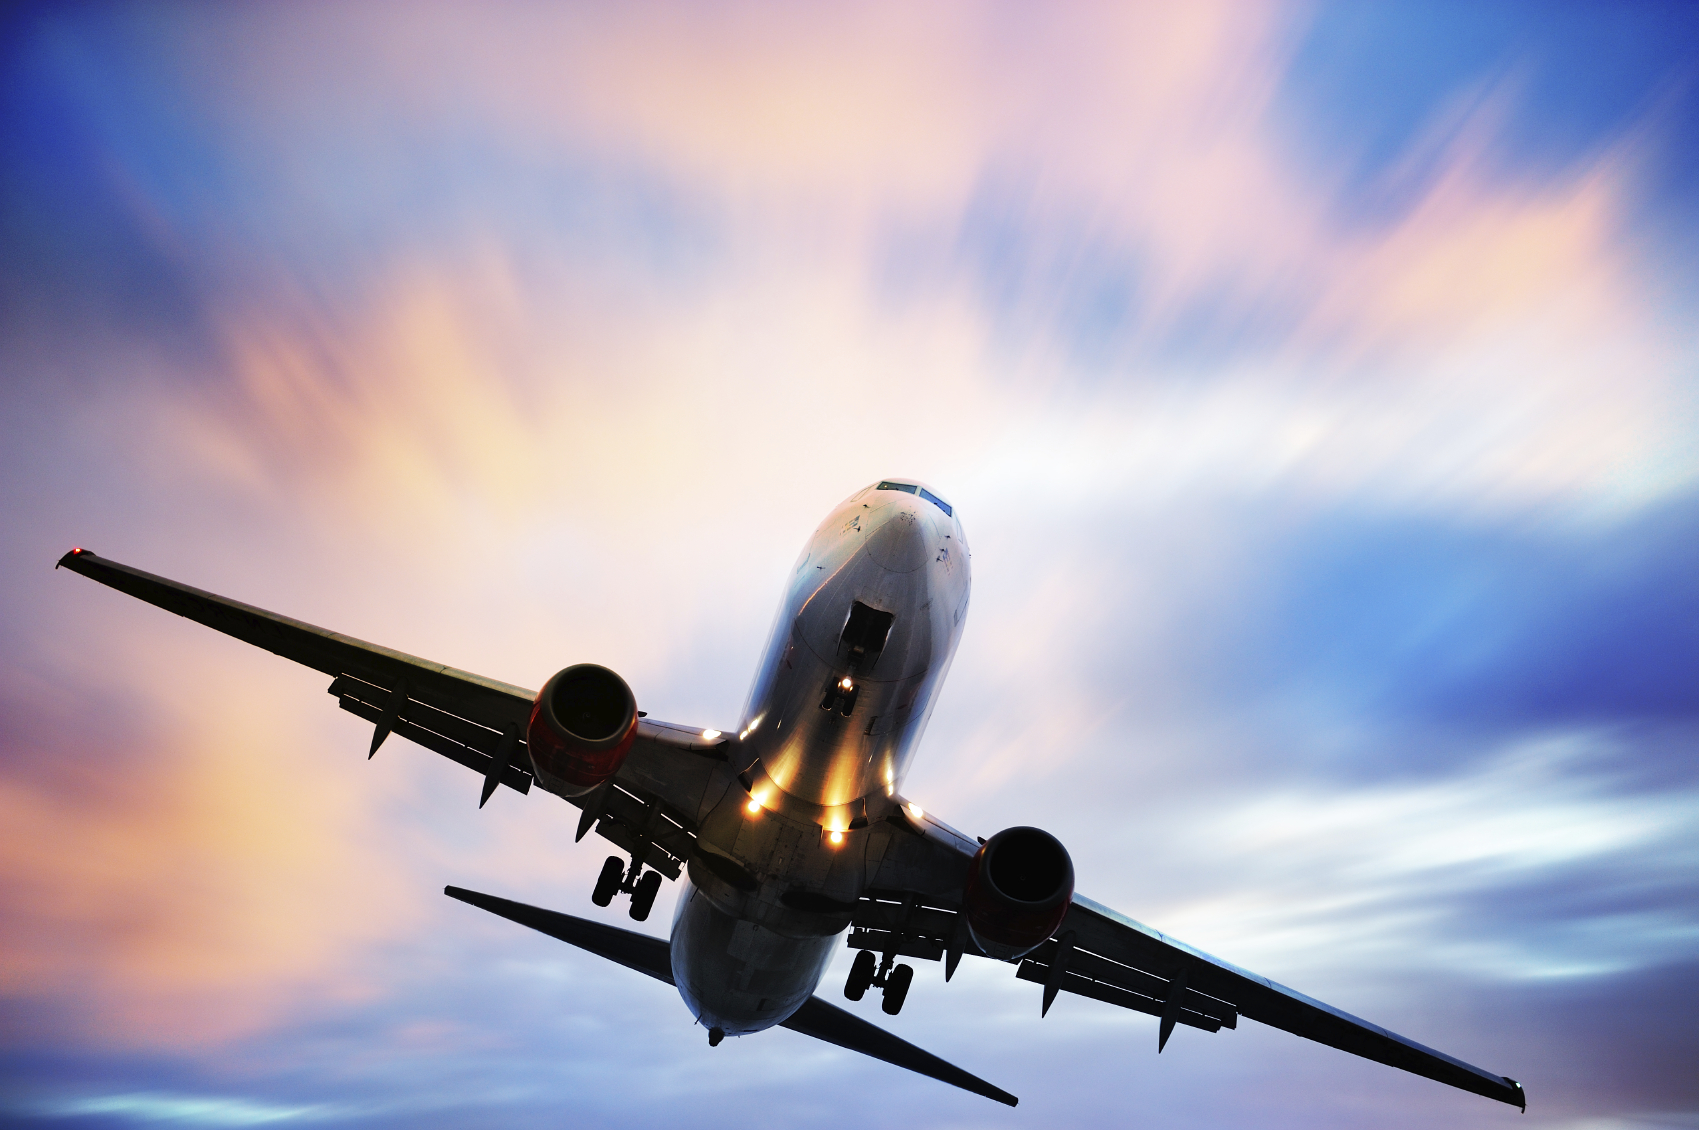 Airplane-taking-off-against-blue-and-pink-sky1